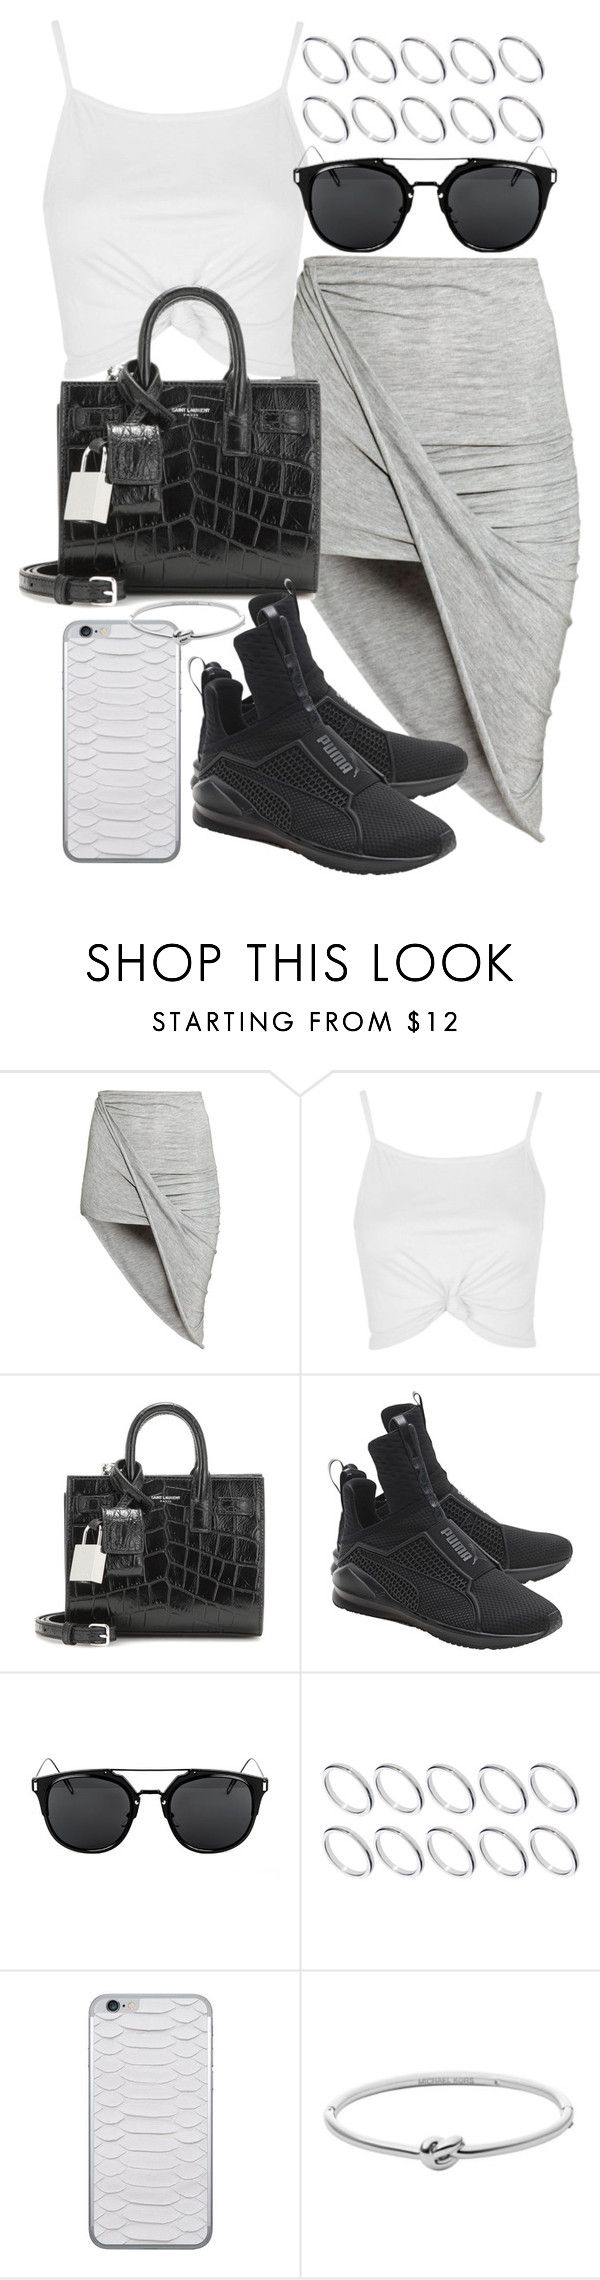 """""""Untitled #19792"""" by florencia95 ❤ liked on Polyvore featuring H&M, Topshop, Yves Saint Laurent, Puma, ASOS, Jamie Clawson and Michael Kors"""